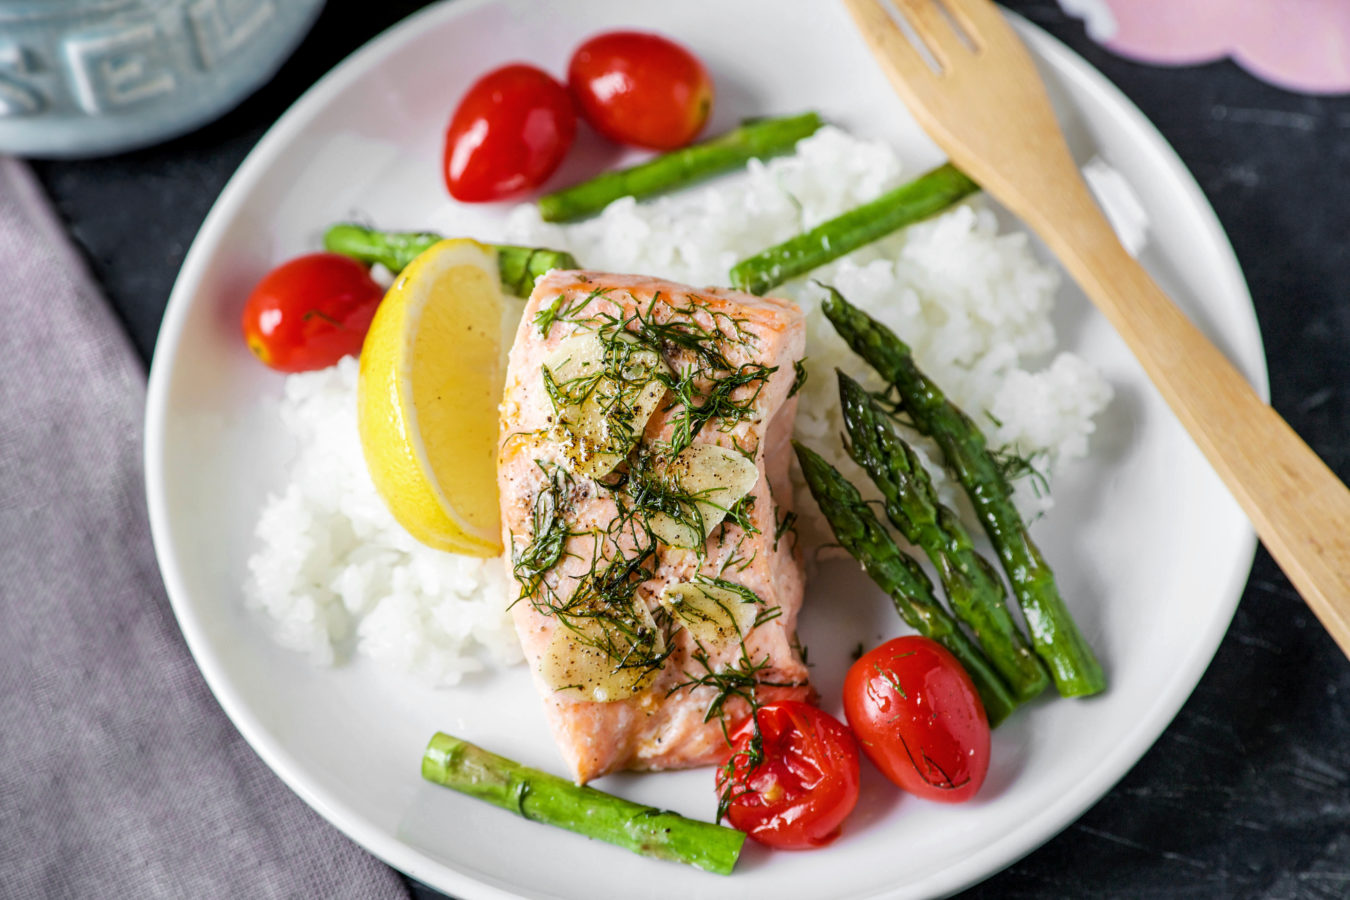 Steamed Garlic Salmon with Dill and Garden Vegetables